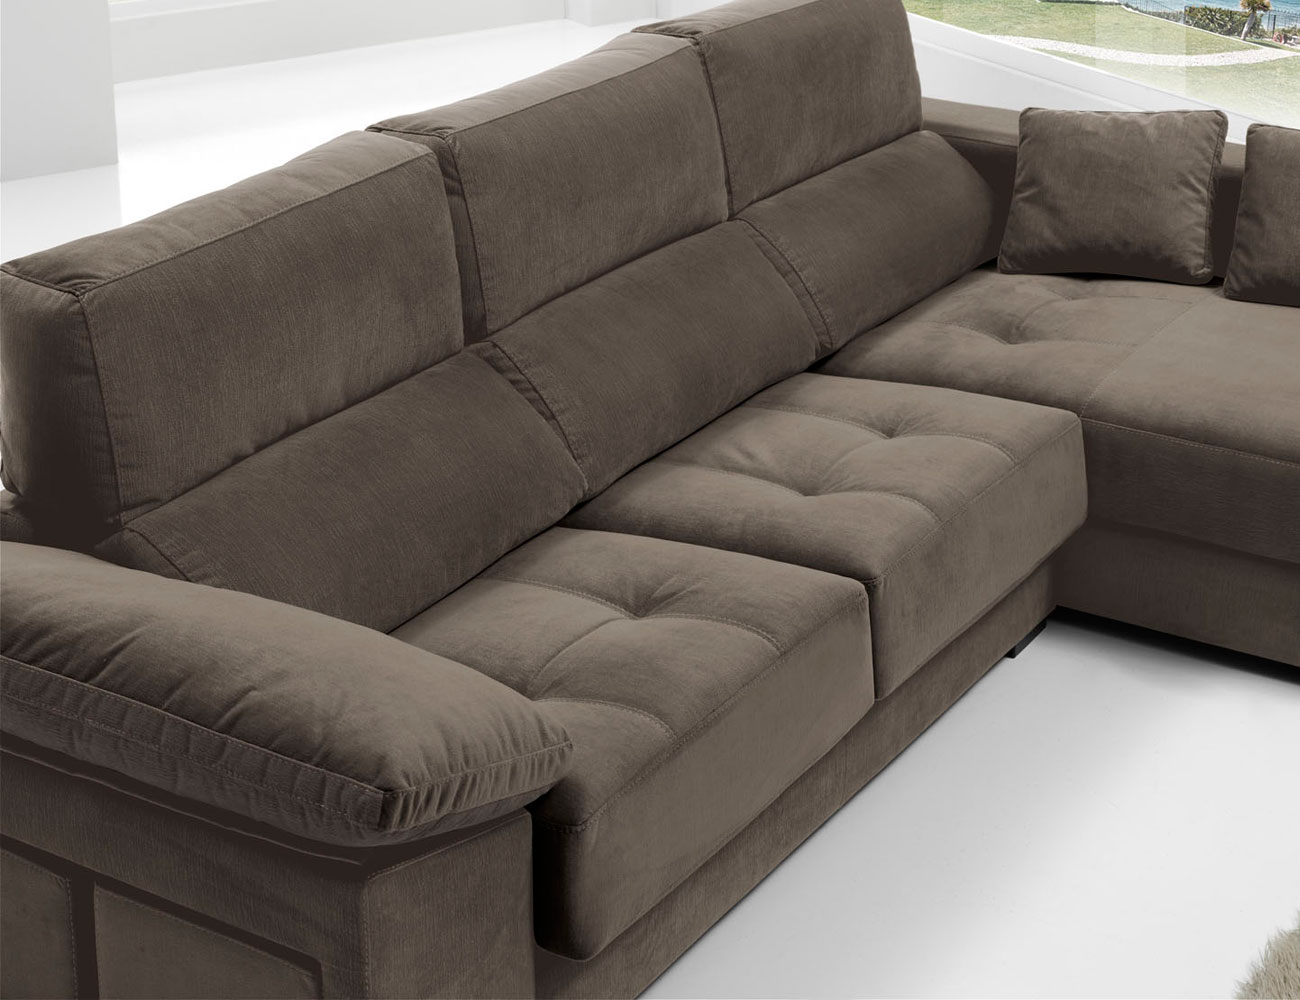 Sofa chaiselongue anti manchas bering pouf 243